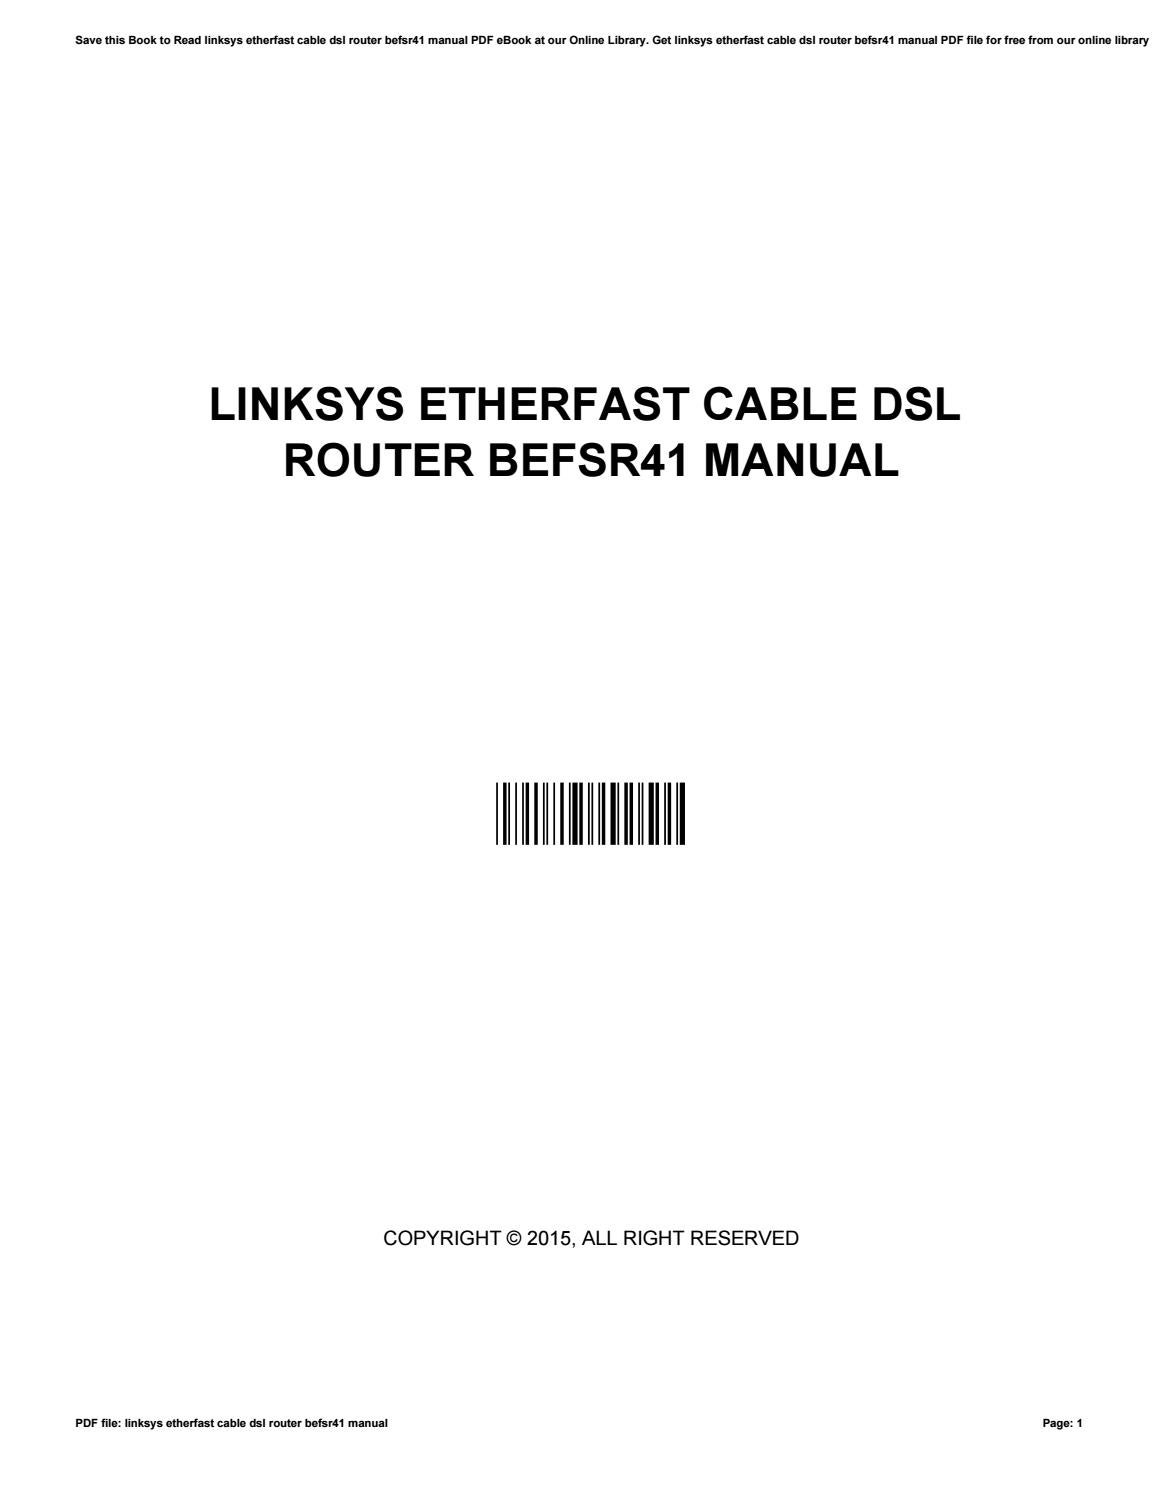 Linksys etherfast cable dsl router befsr41 manual by JamieGorman3869 - issuu